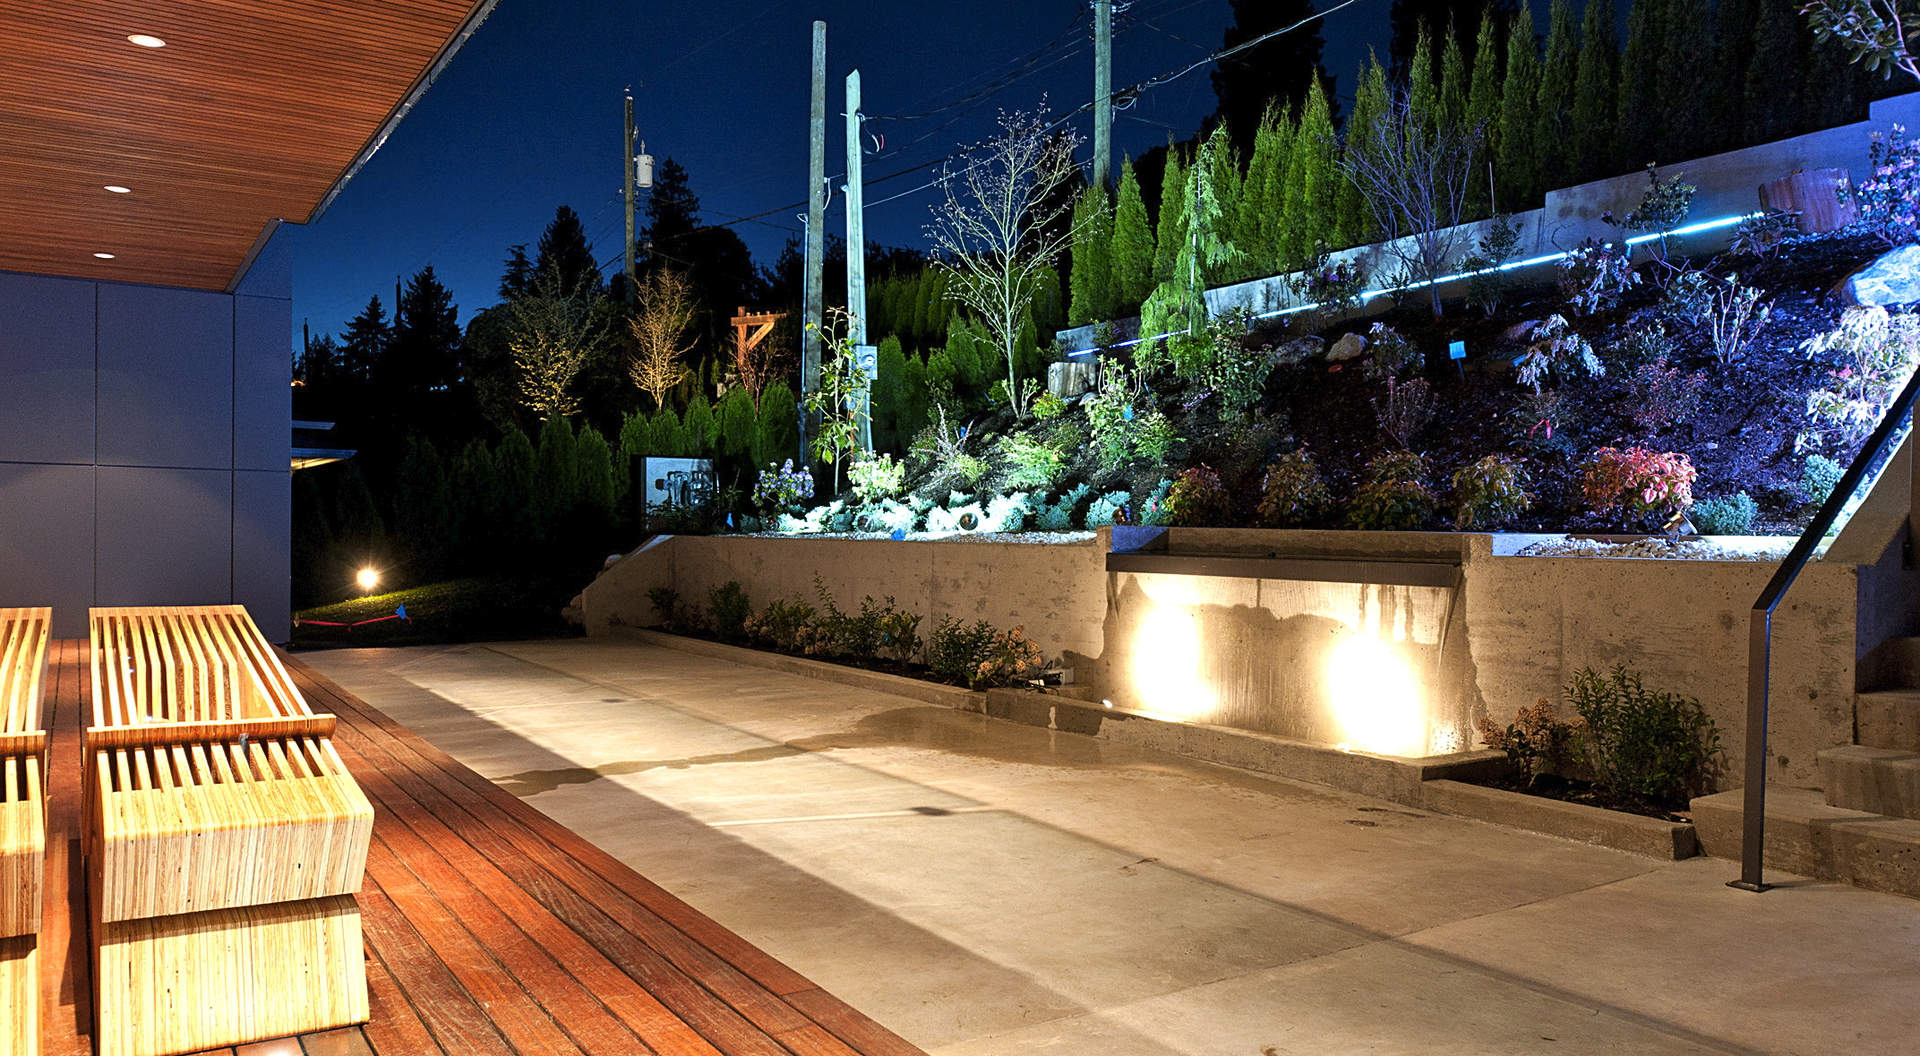 Stunning Gardens with Full Irrigation & Illumination Through-out